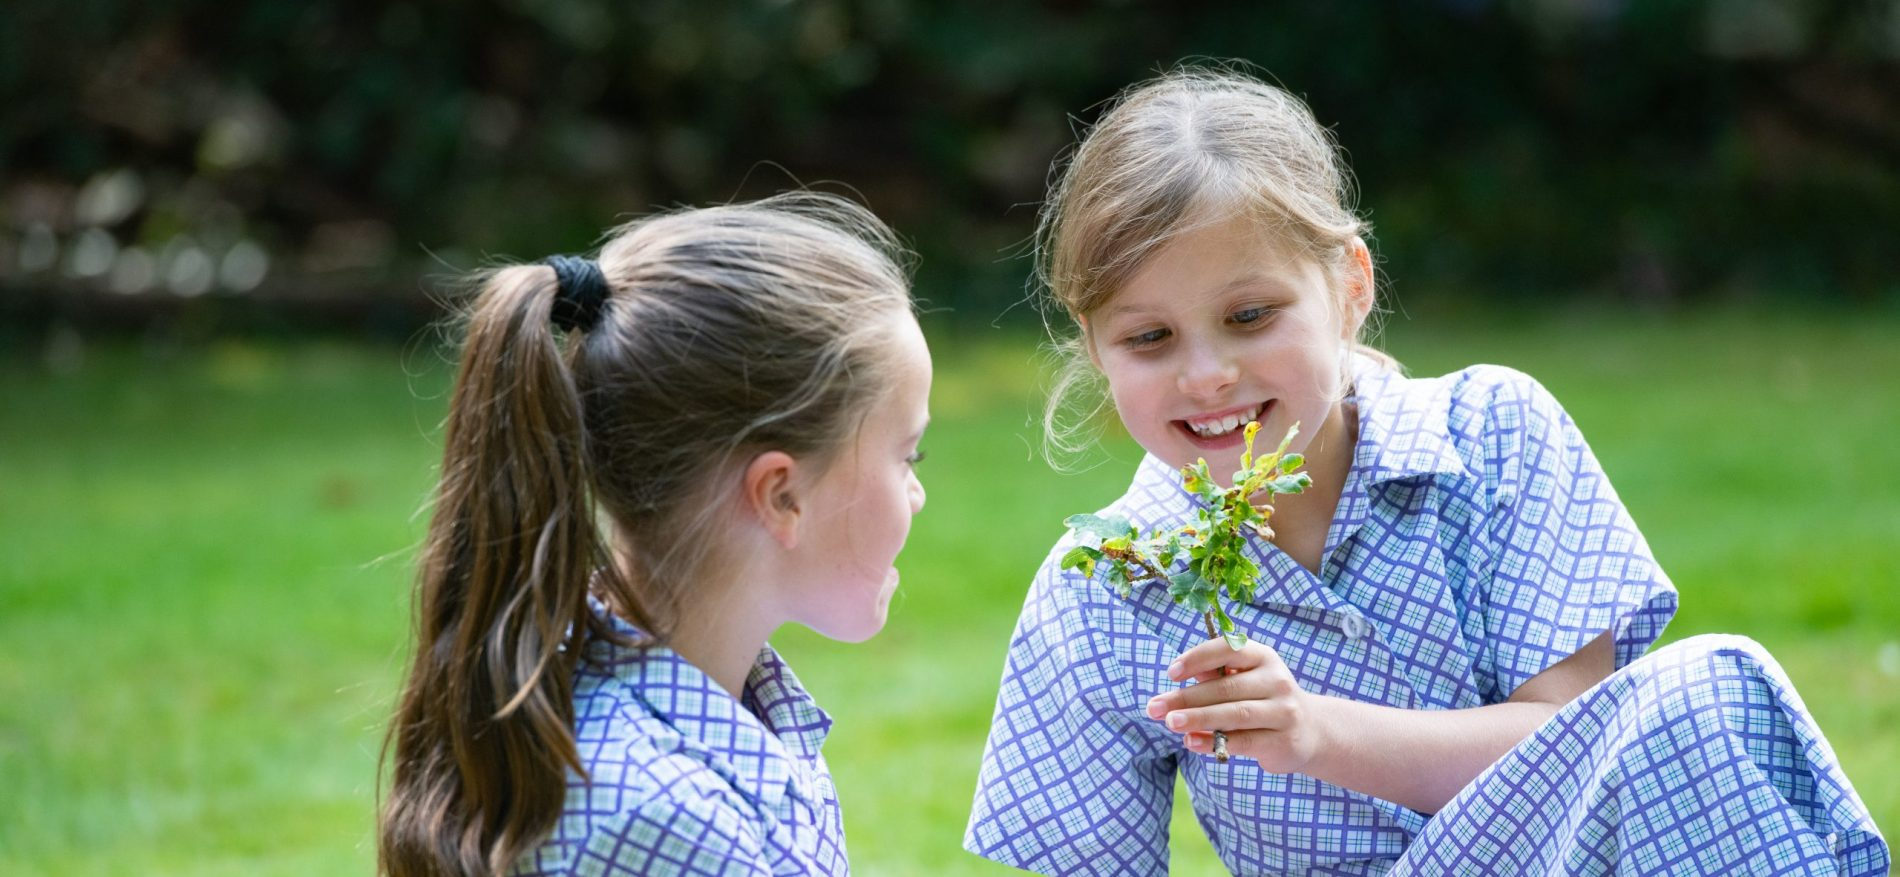 A girl shows another girl a flower they found